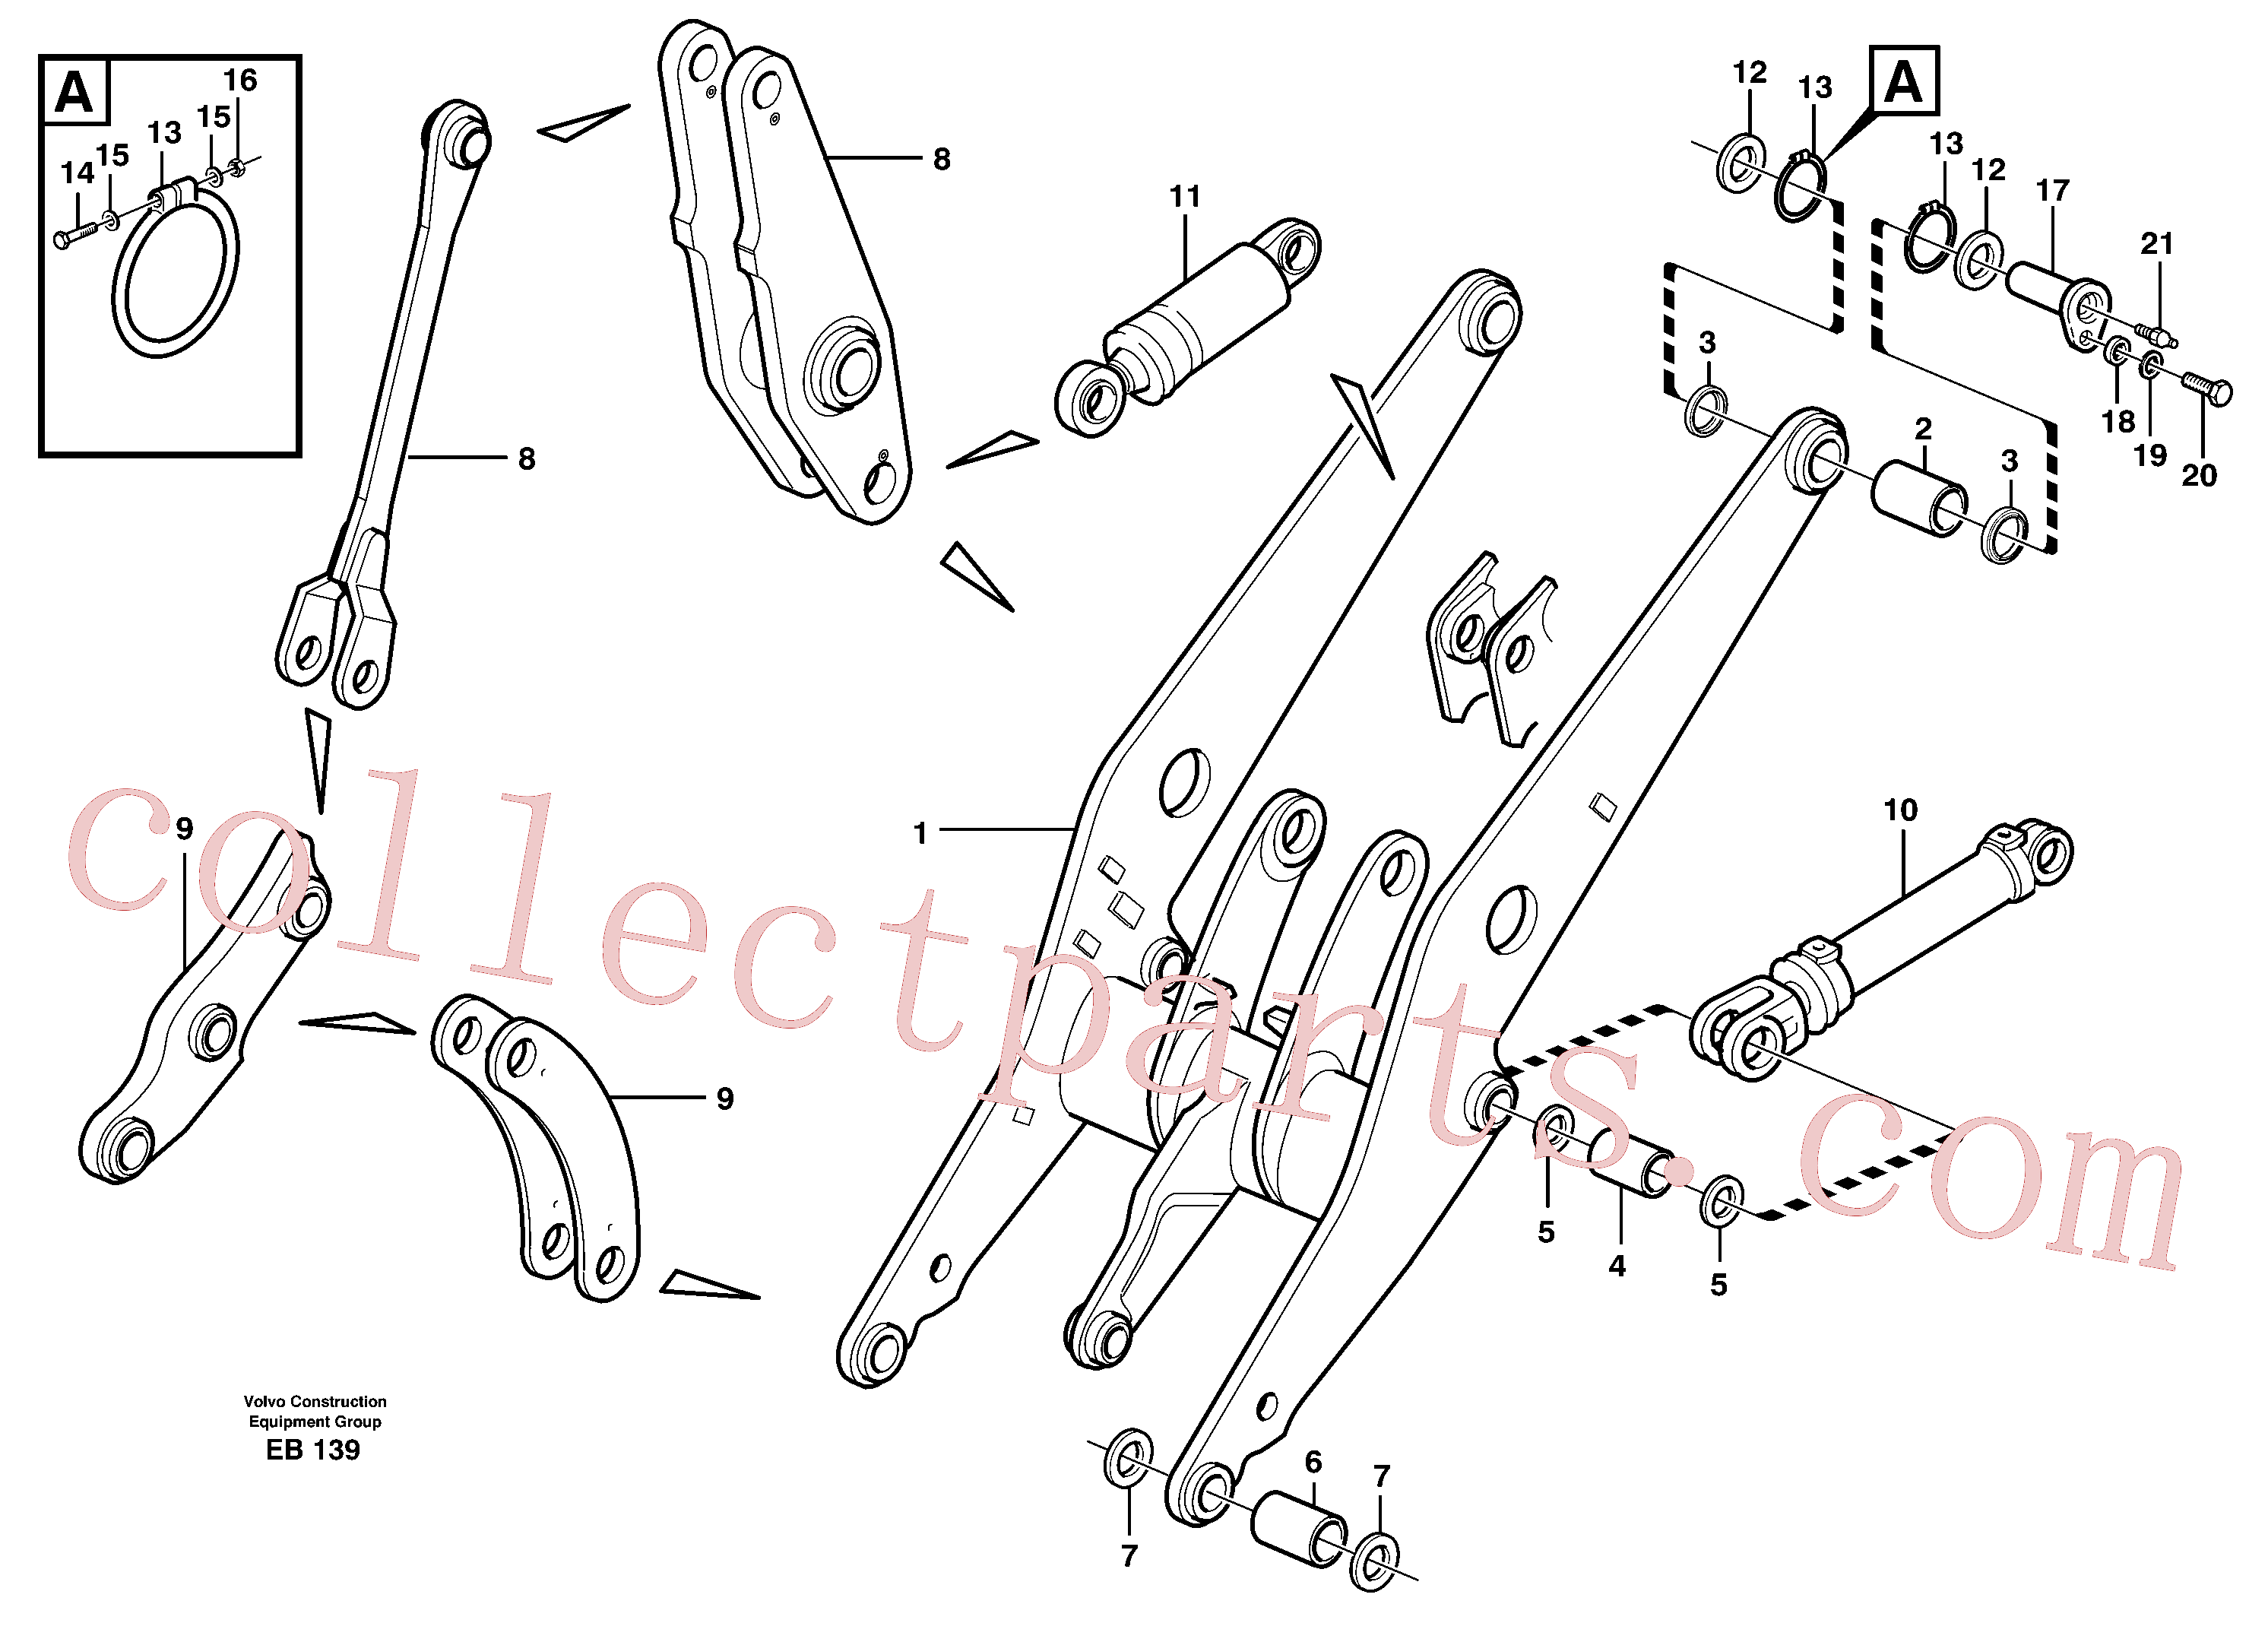 VOE11018444 for Volvo Lifting framework with assembly parts(EB139 assembly)